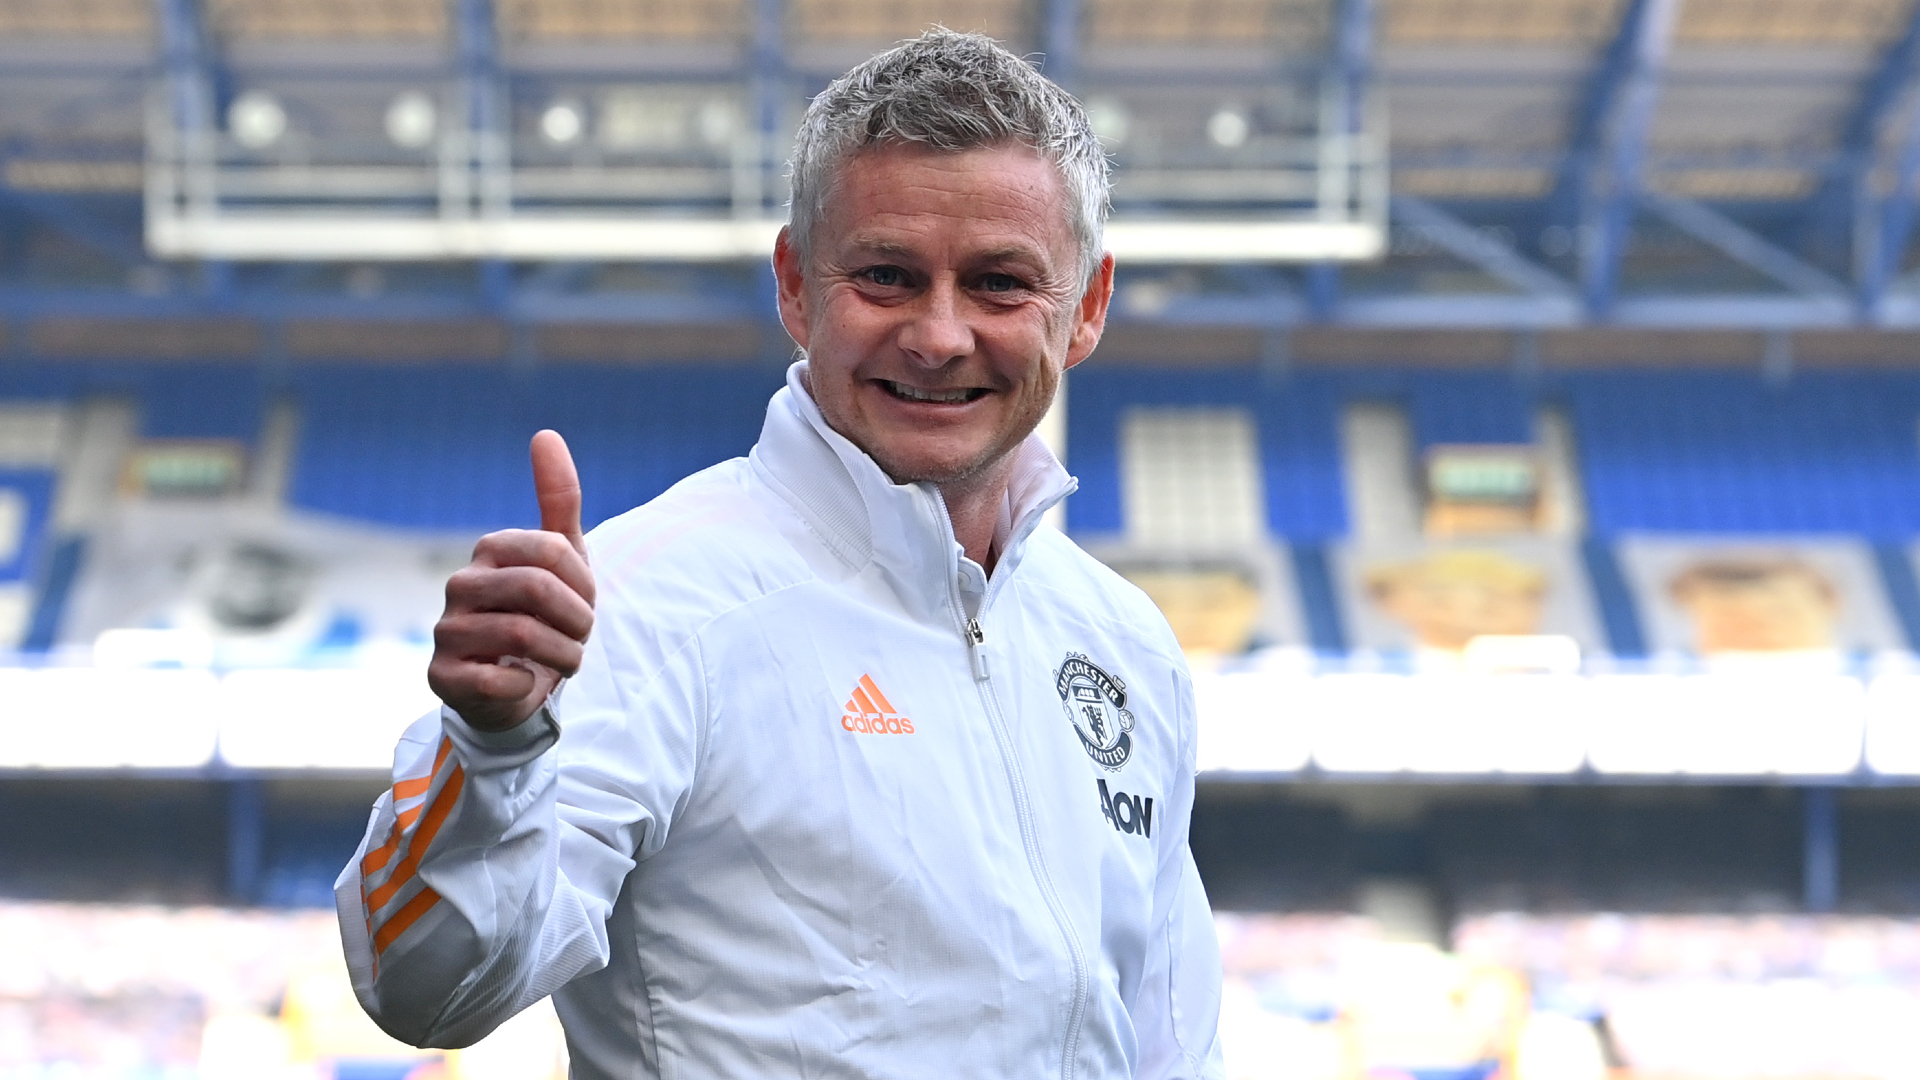 Ole excited with Europa League final.